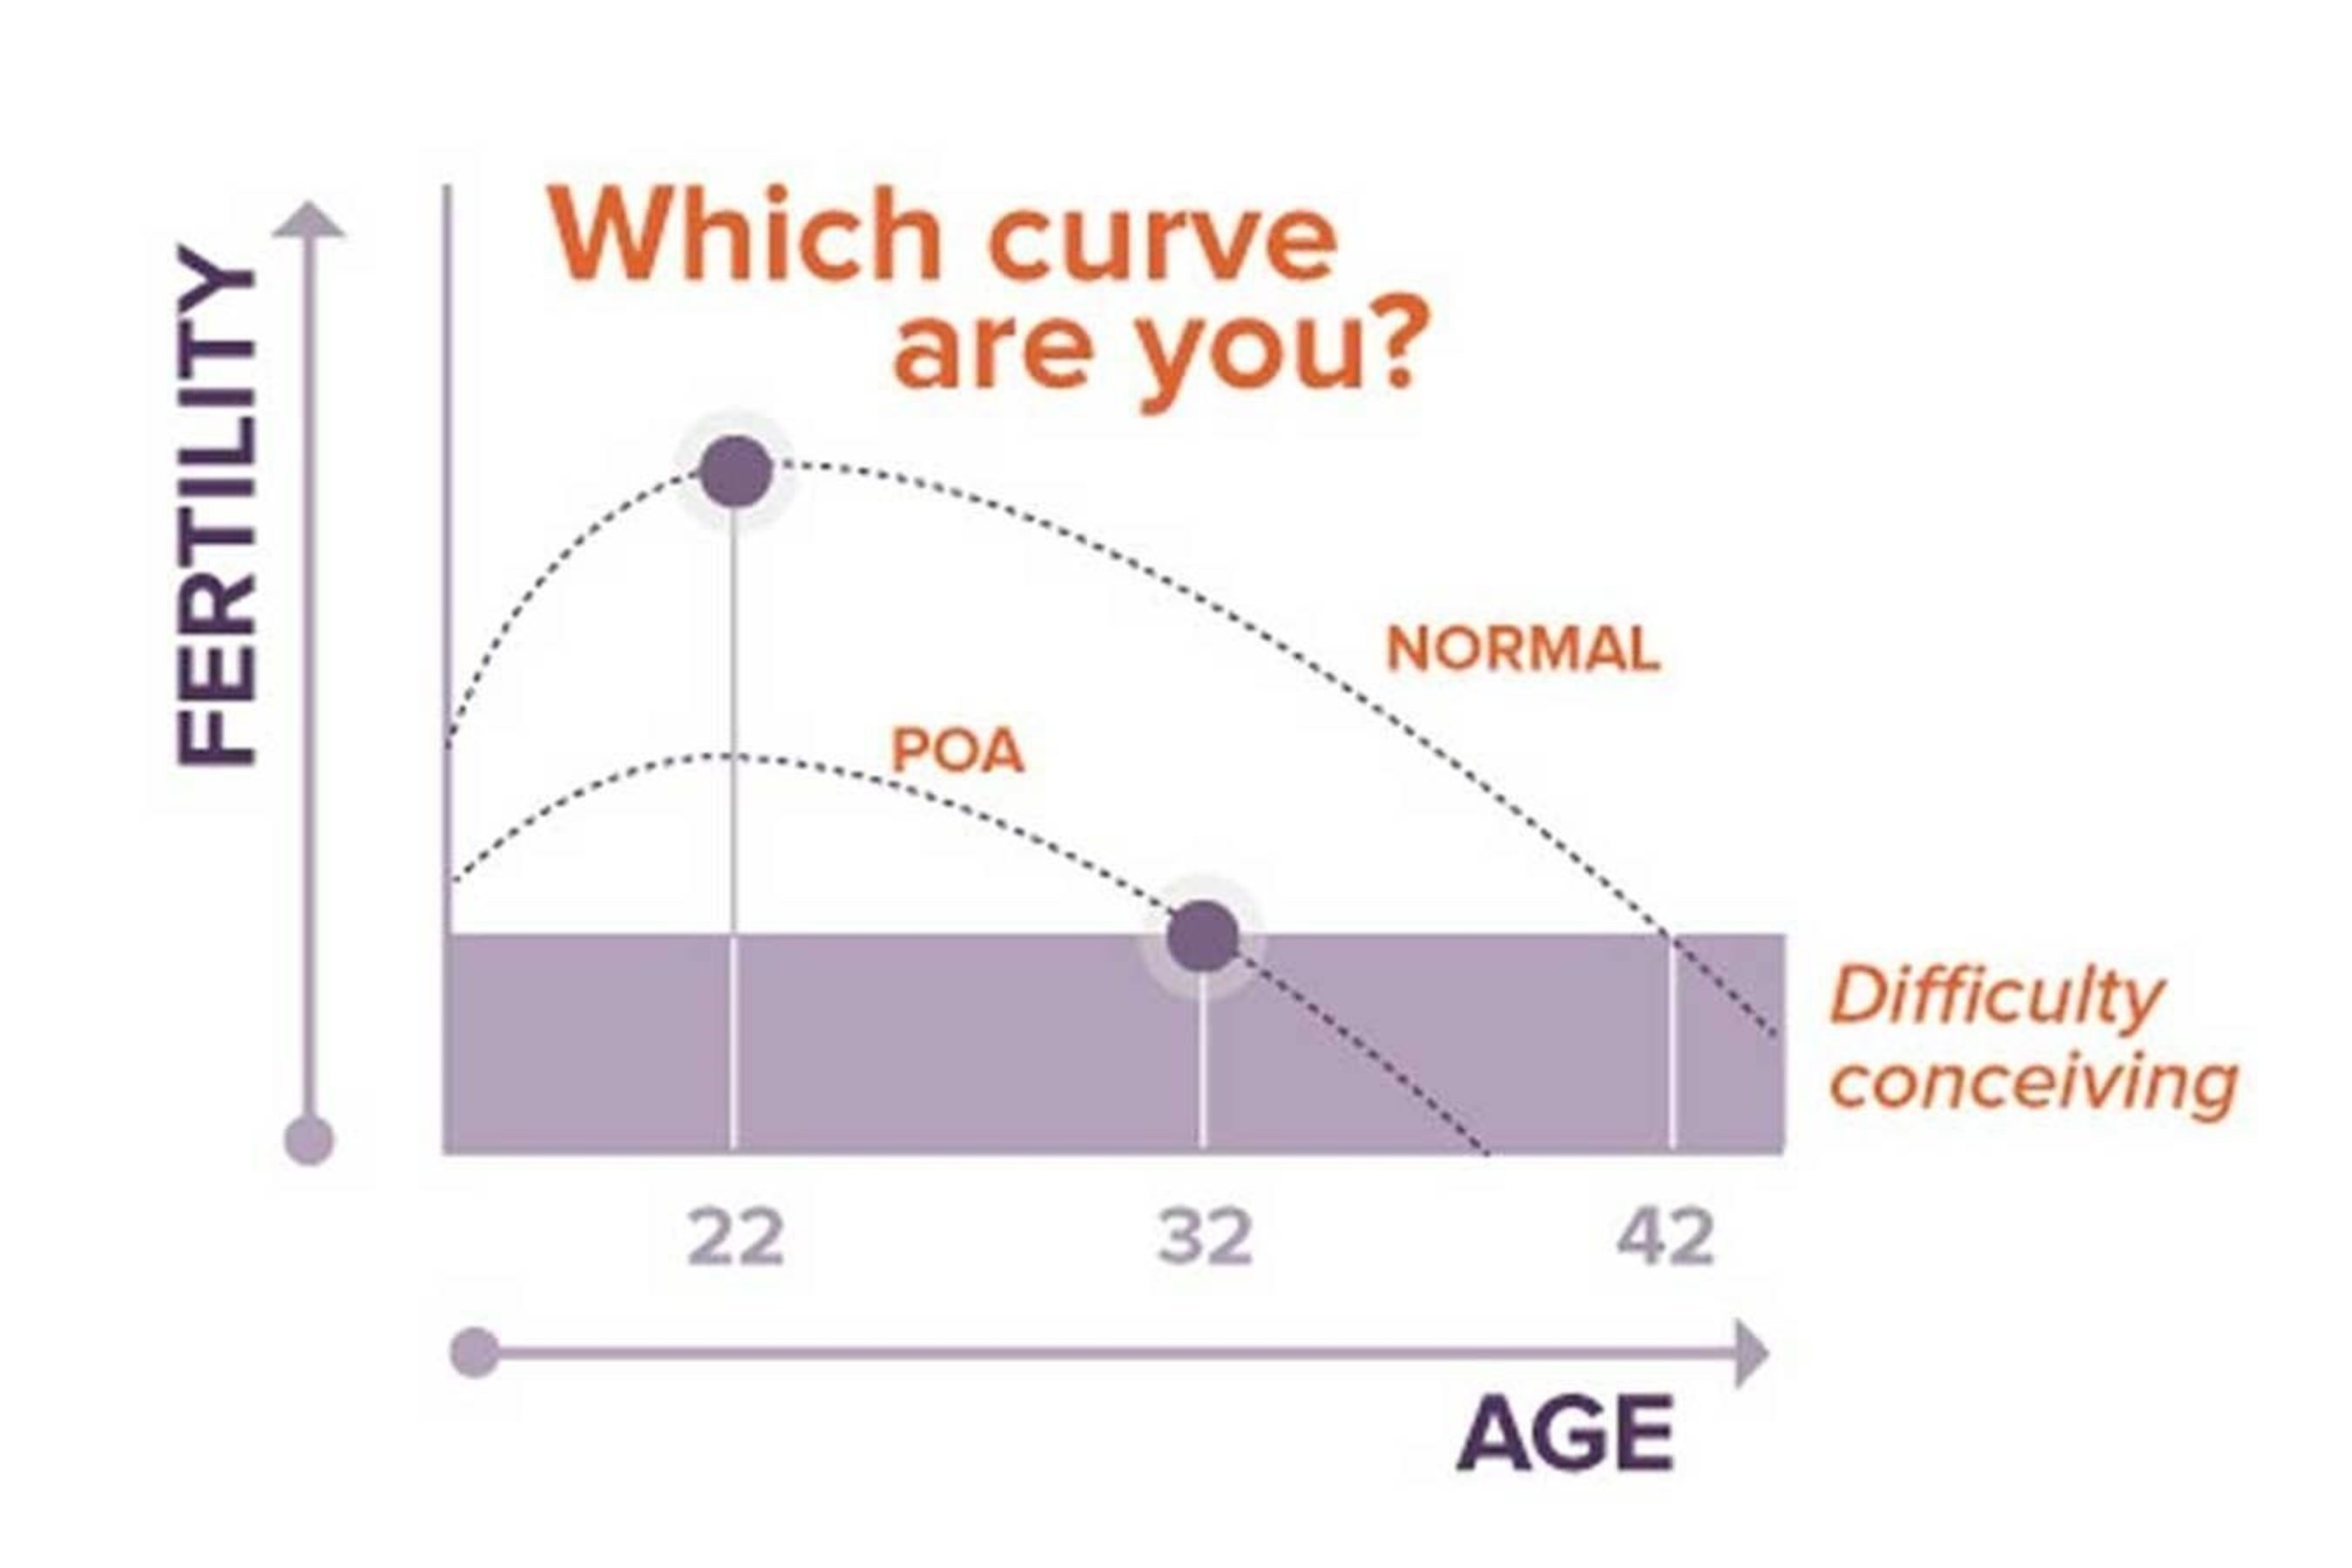 Which curve are you?